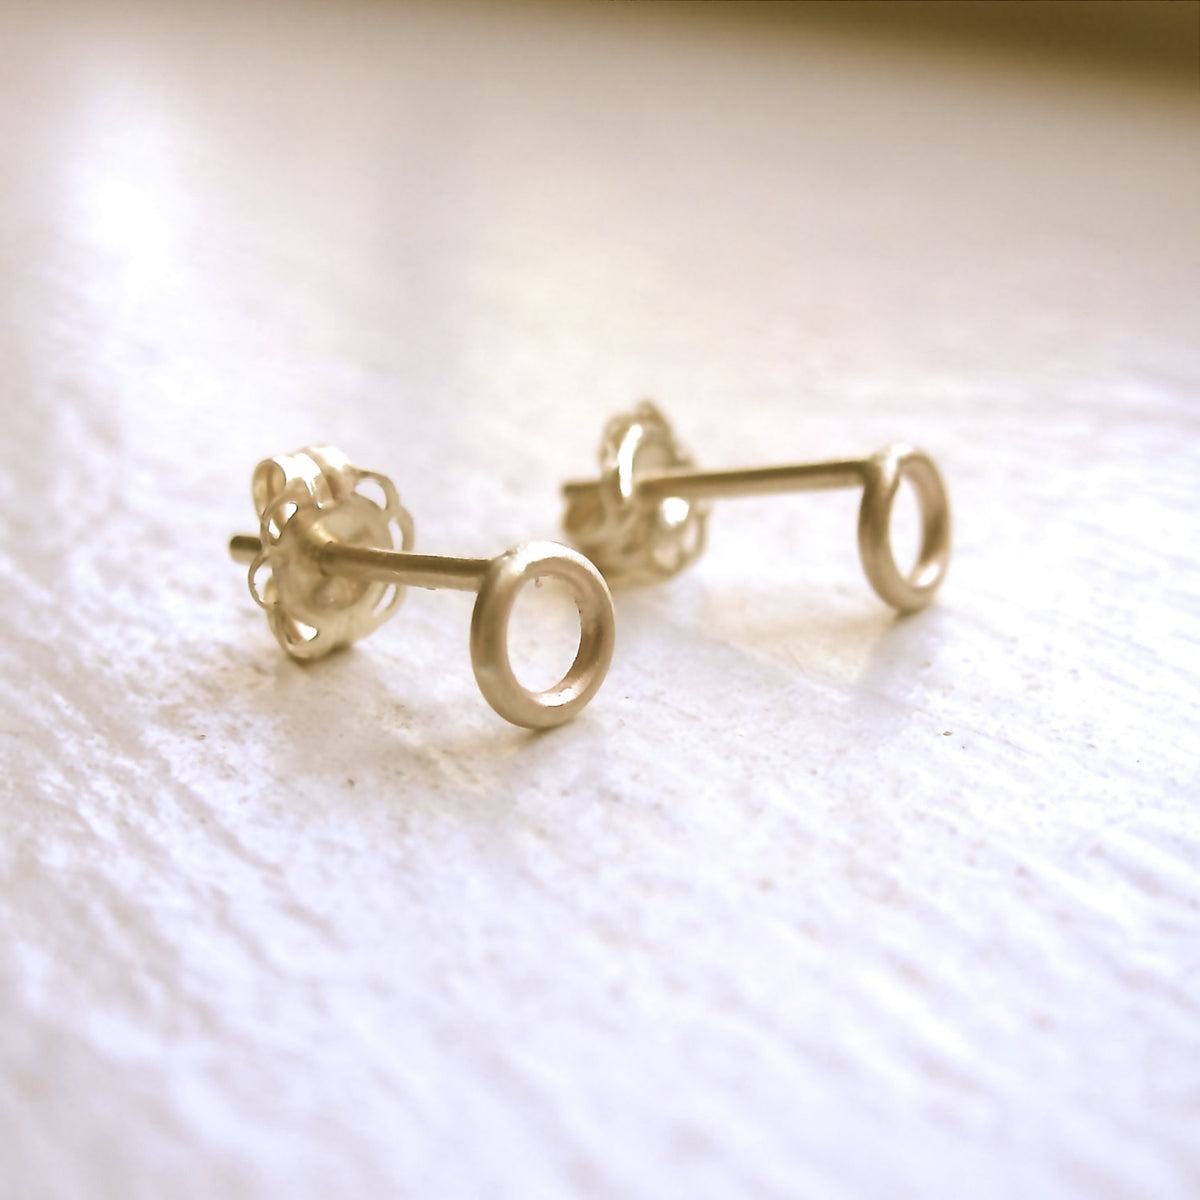 Delicate And Distinctive Hand-Made Open Circle Stud Earrings - 0126 - Virginia Wynne Designs